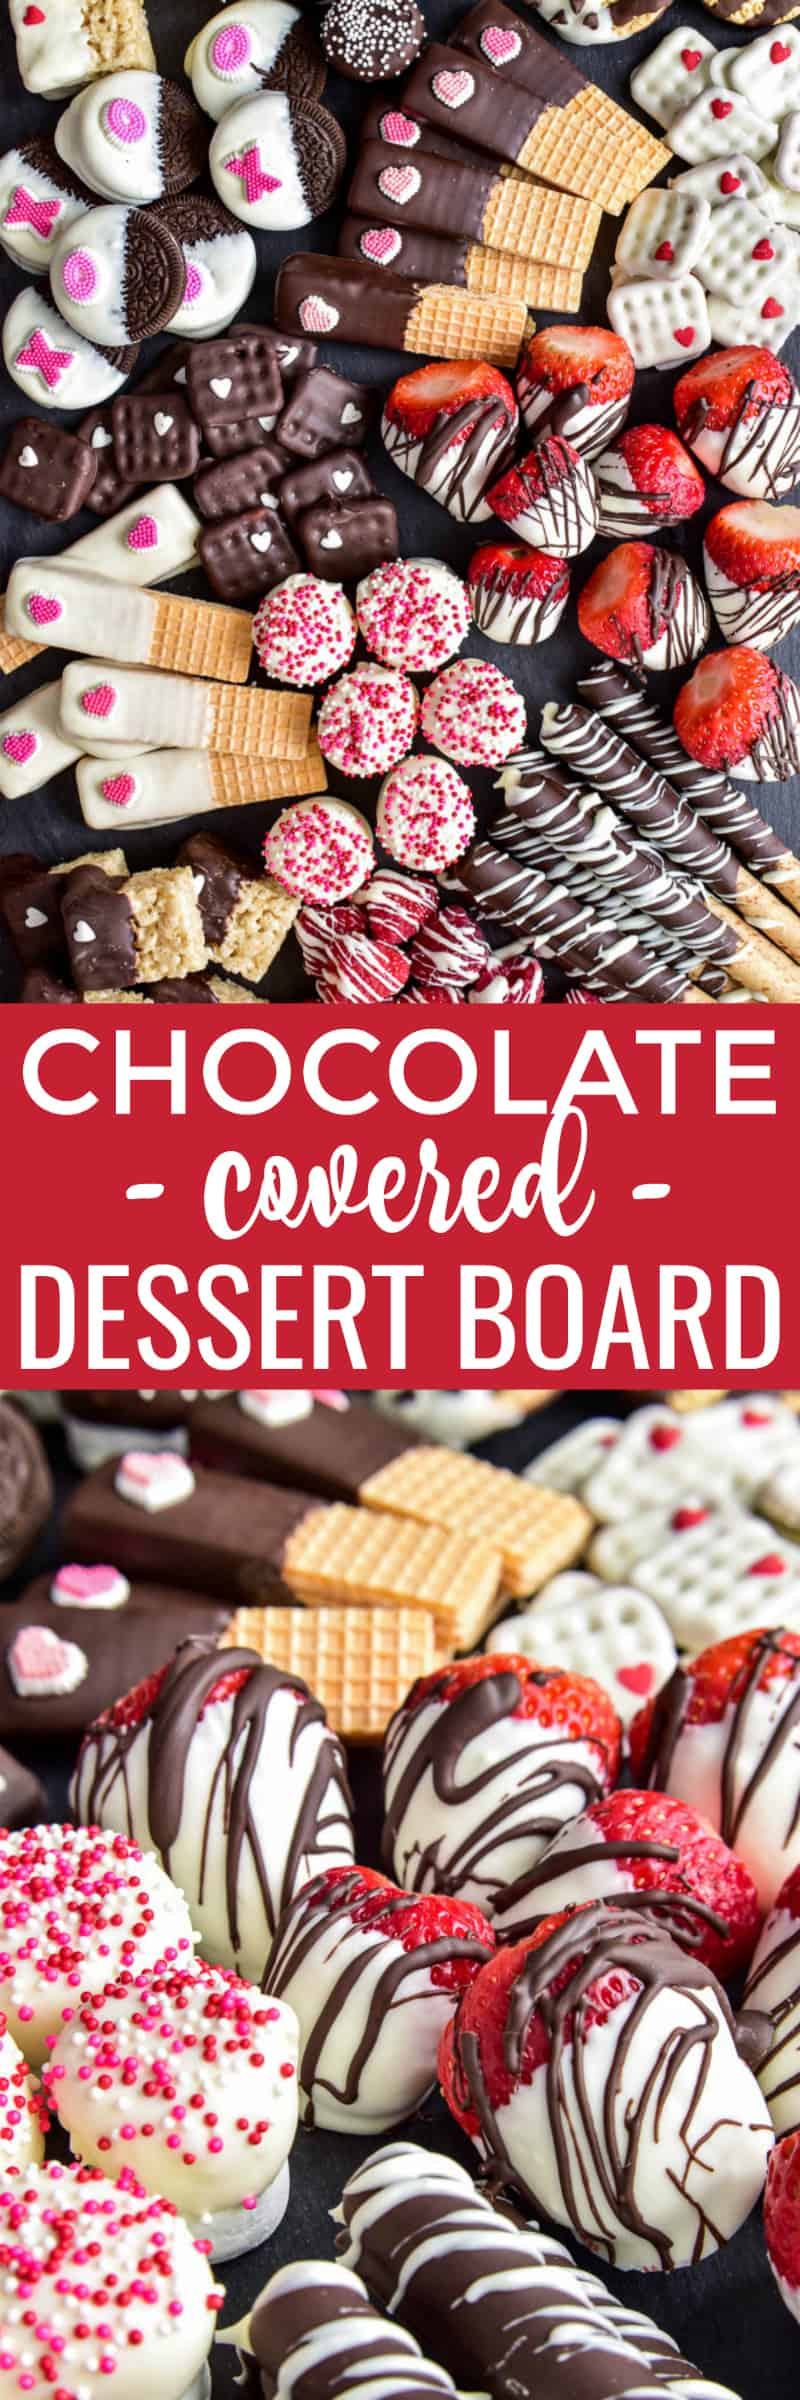 Take your dessert party to the next level with this Chocolate Covered Dessert Board! Loaded with delicious sweet treats that are all chocolate-dipped and decorated, this dessert board is a chocolate lover's dream!